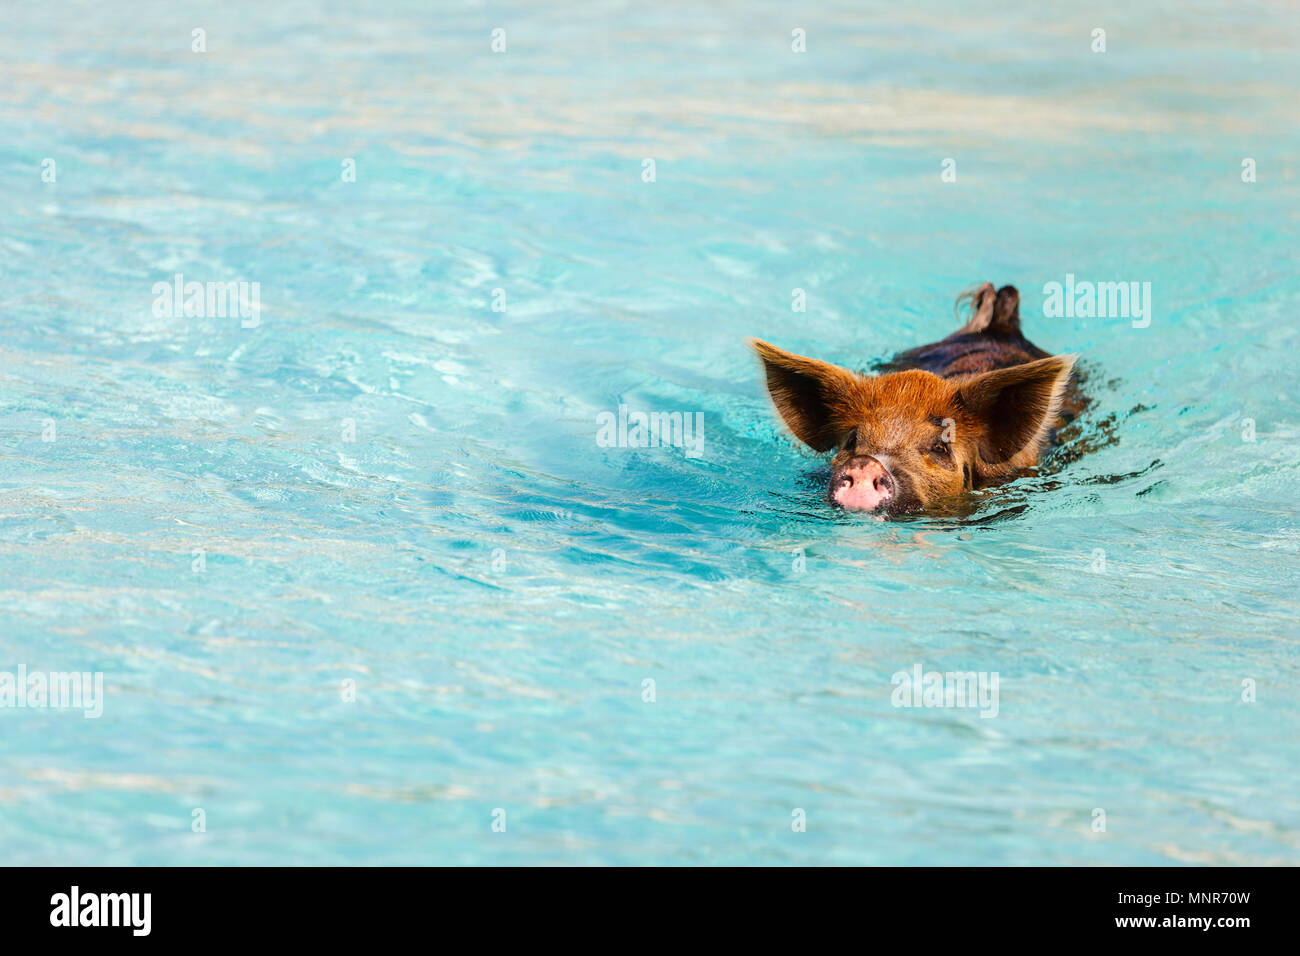 Pig swimming in a water near island of Exuma Bahamas - Stock Image